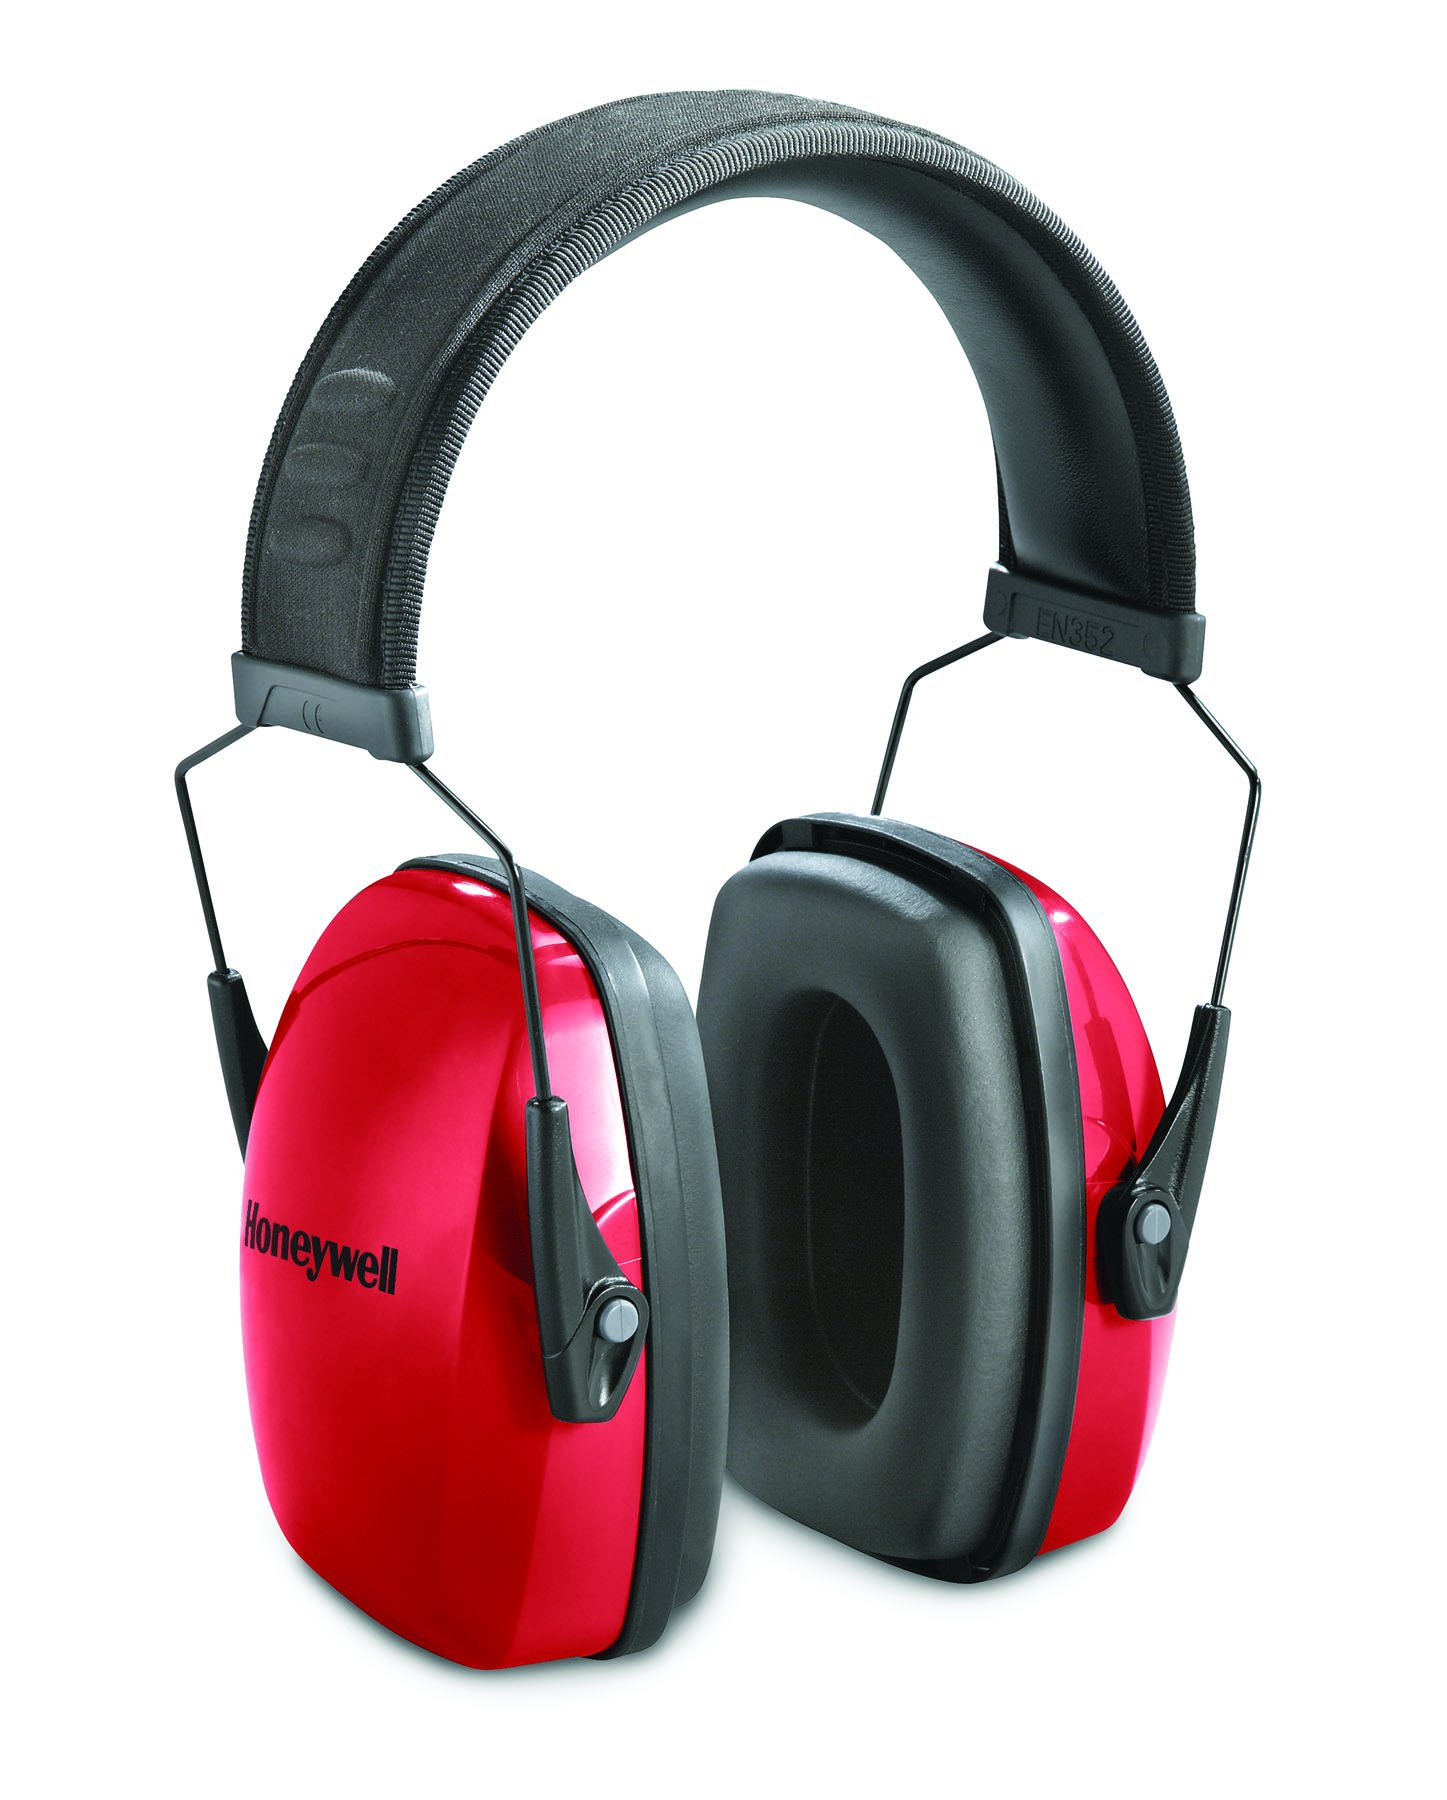 Honeywell Leightning L1 Slimline Low Profile Safety Earmuff (RWS-53006)